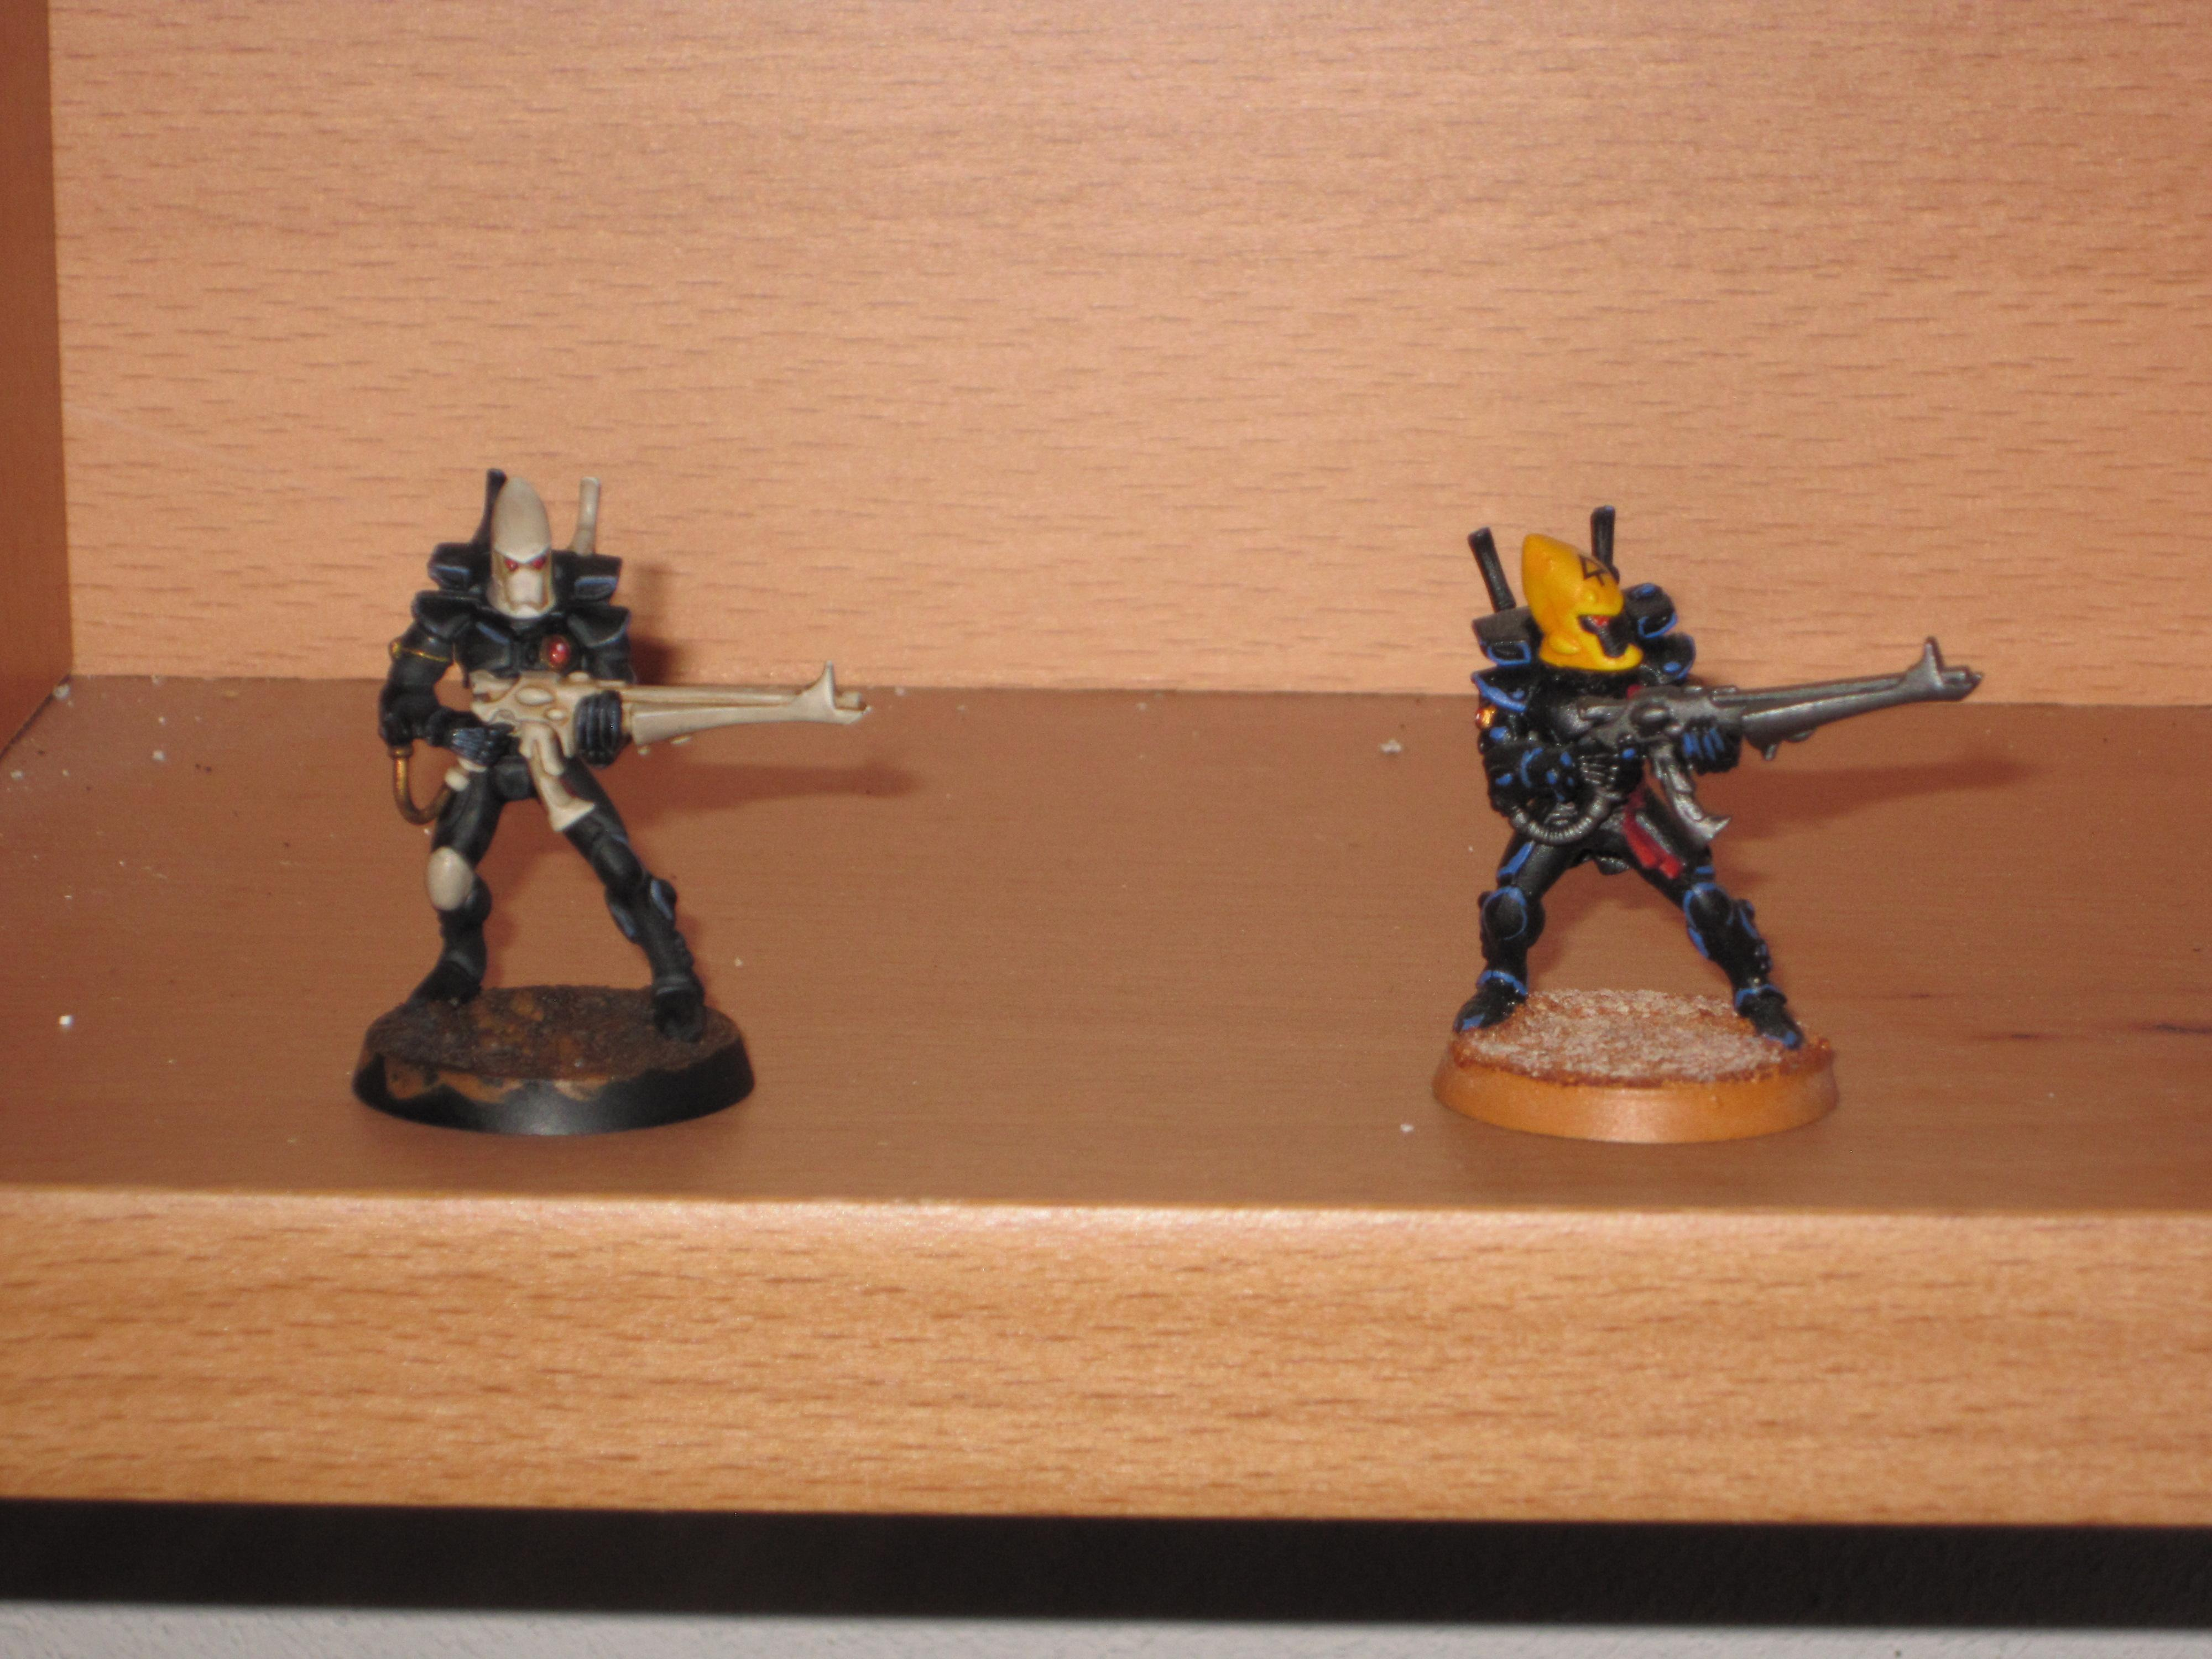 New wip Guardian on the left and old Guardian on the right